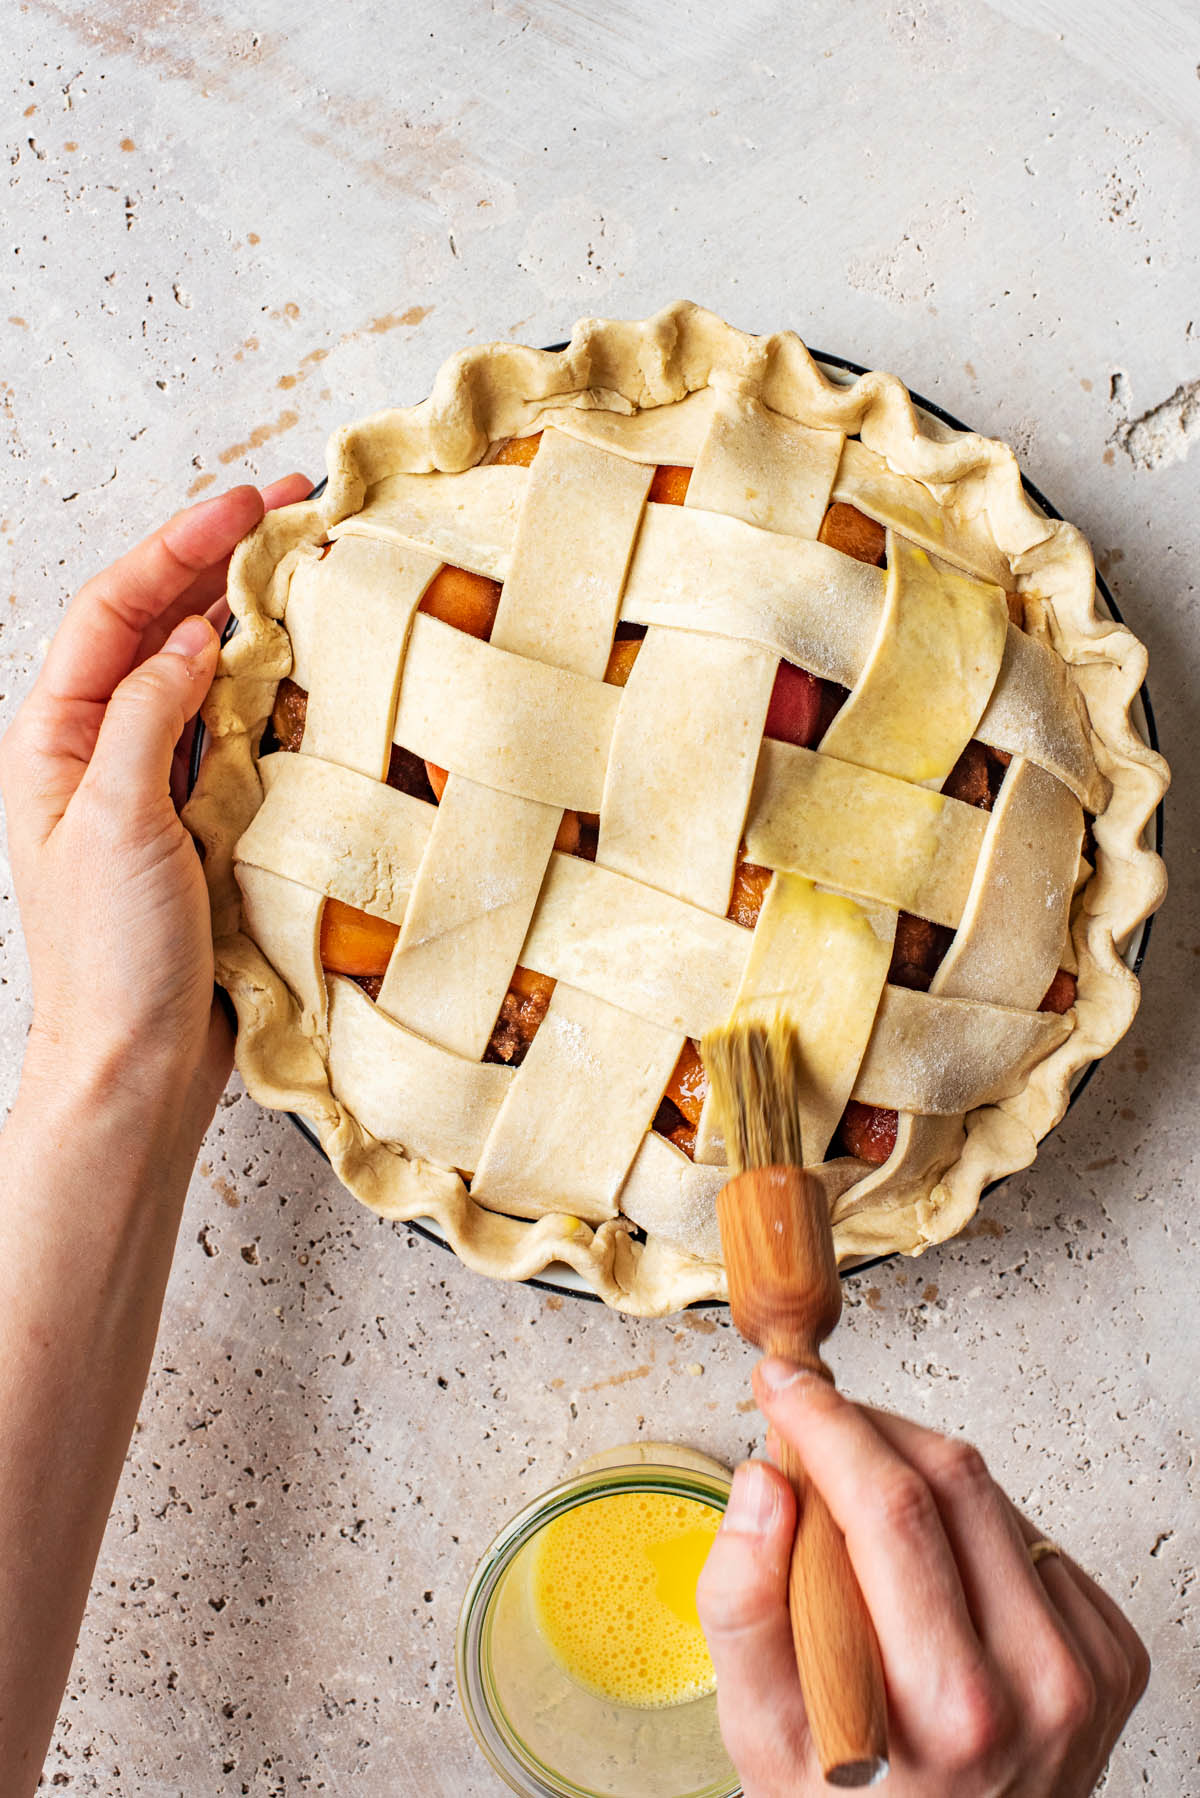 Woman's hands brushing egg wash onto lattice pie with a small wooden brush.